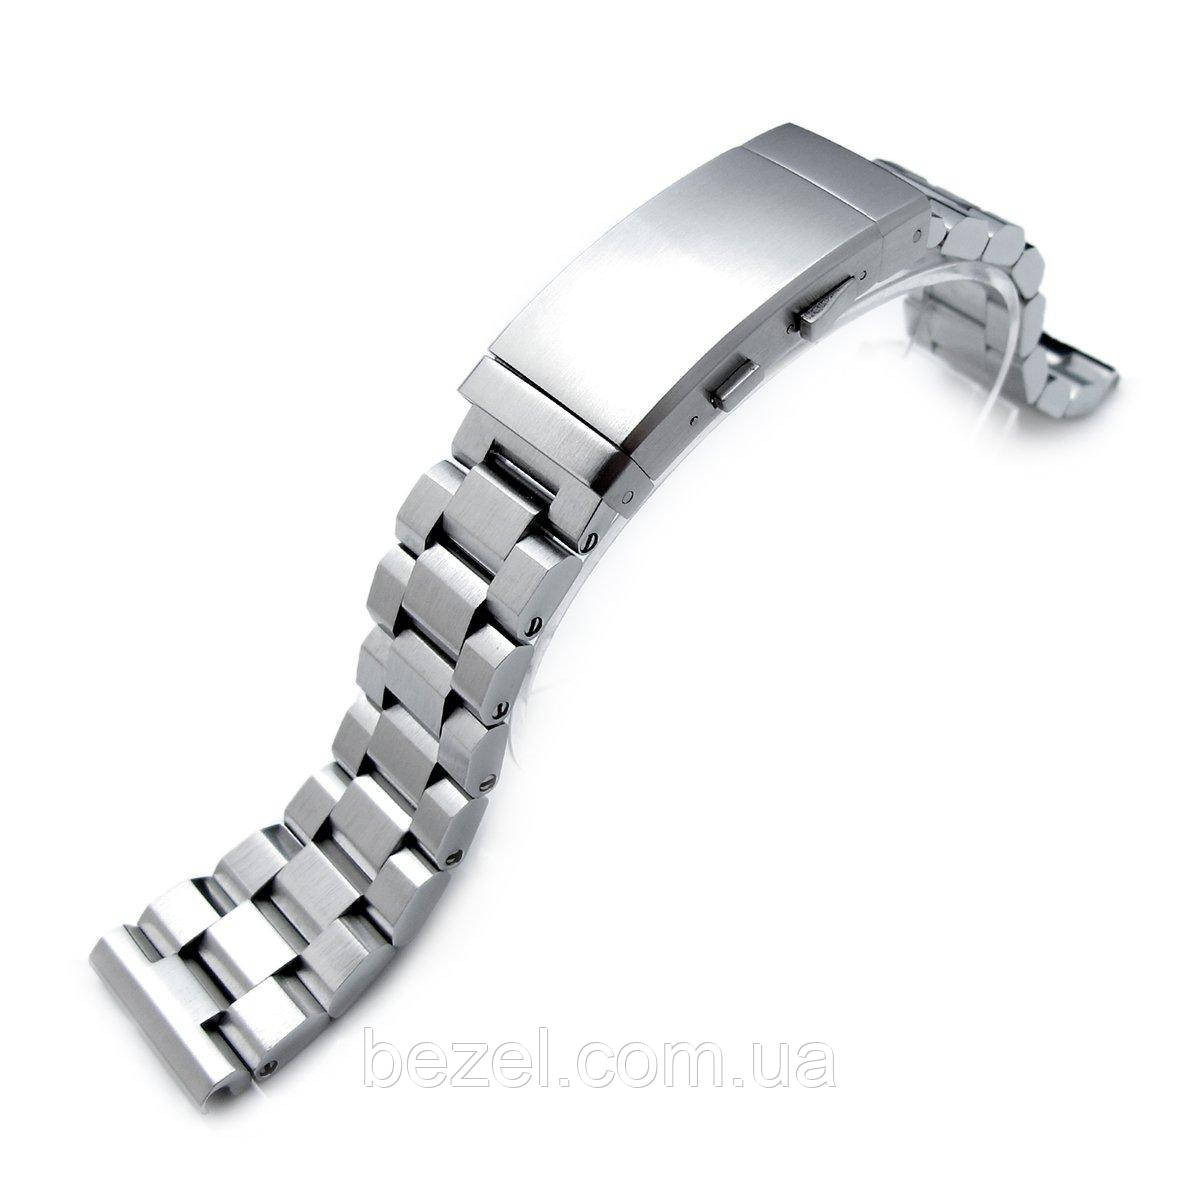 22mm Hexad Oyster 316L Stainless Steel Watch Band Straight Lug, Wetsuit Ratchet Buckle Brushed